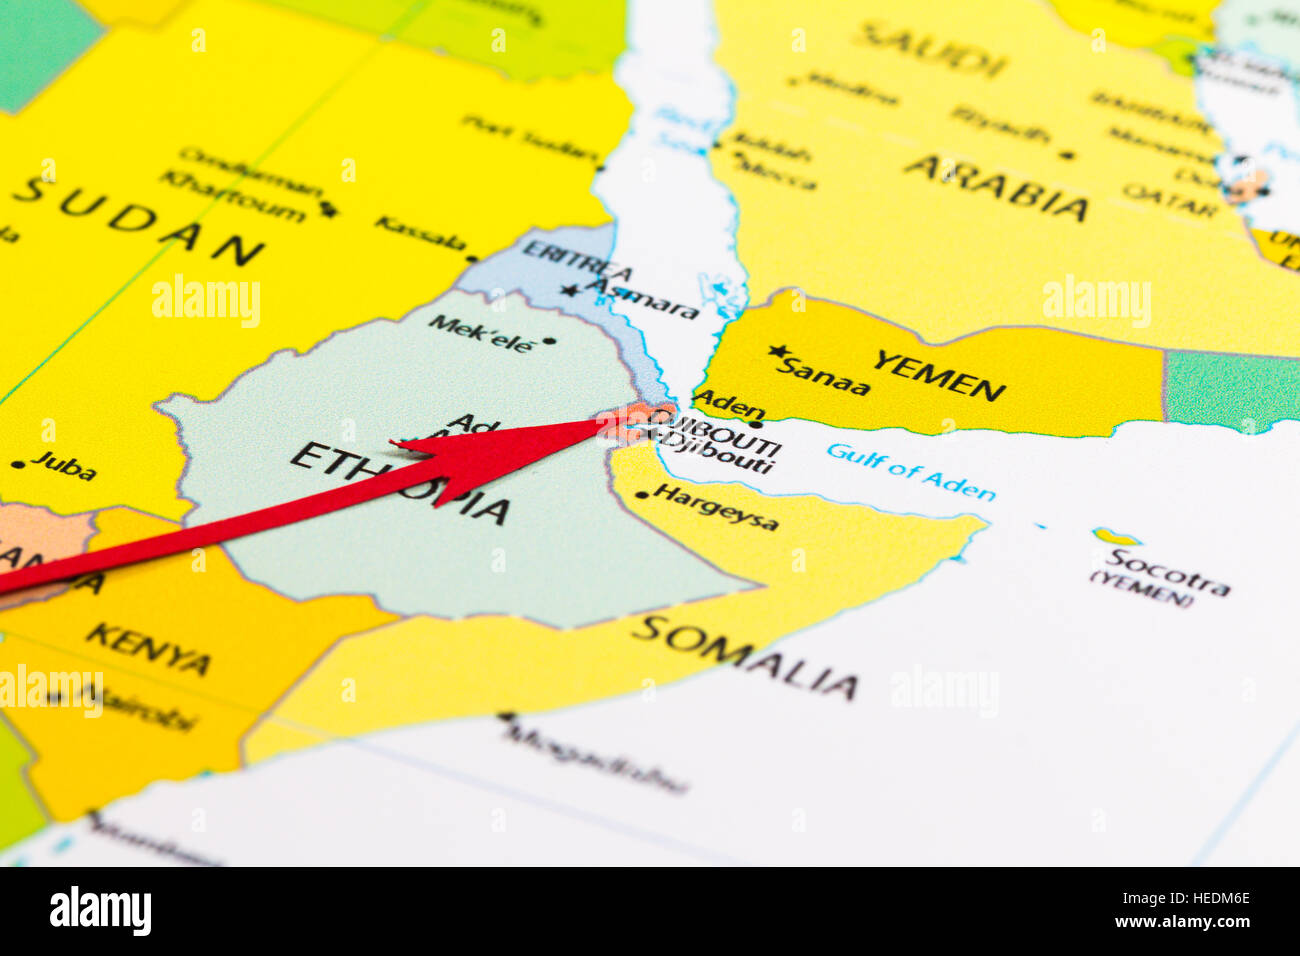 Red Arrow Pointing Djibouti On The Map Of Africa Continent Stock - Djibouti map